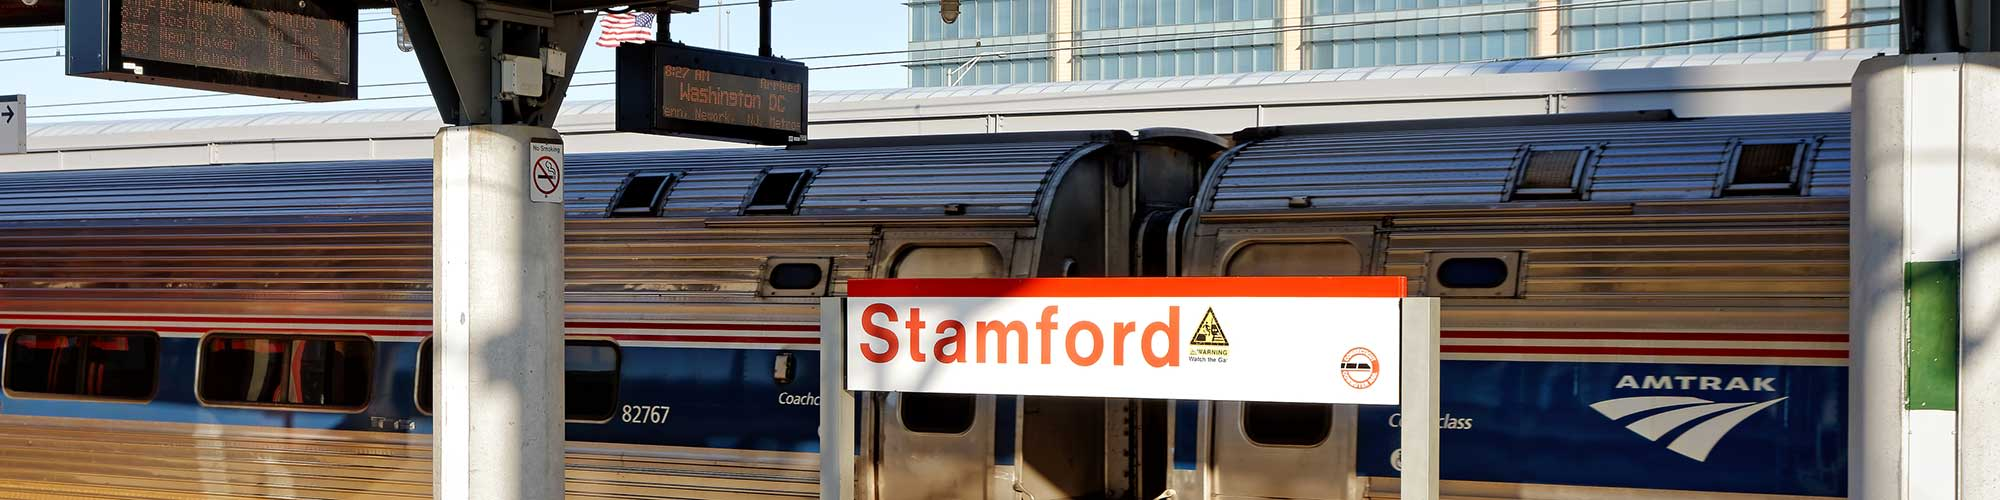 Transit system in Stamford, Connecticut